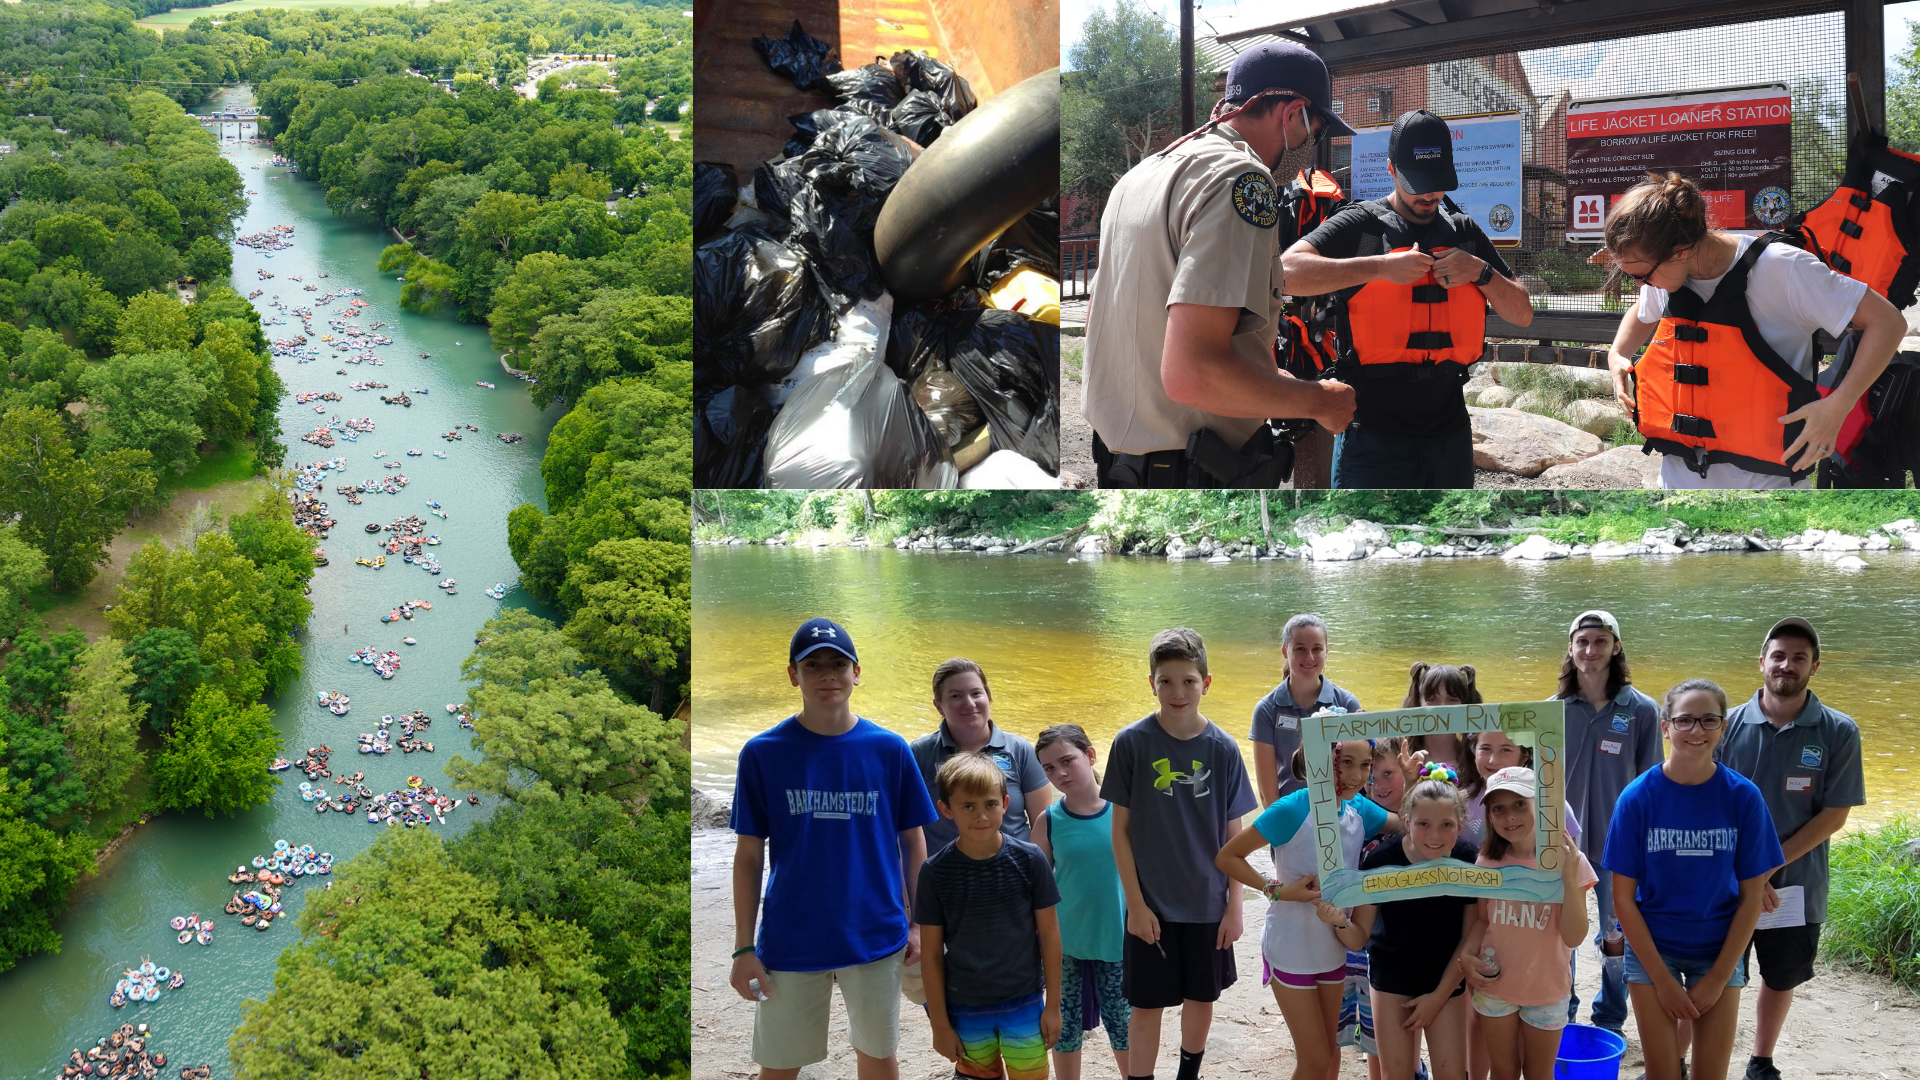 Photos by WORD of Comal County, FERC River Stewards, Arkansas Headwaters Recreation Area